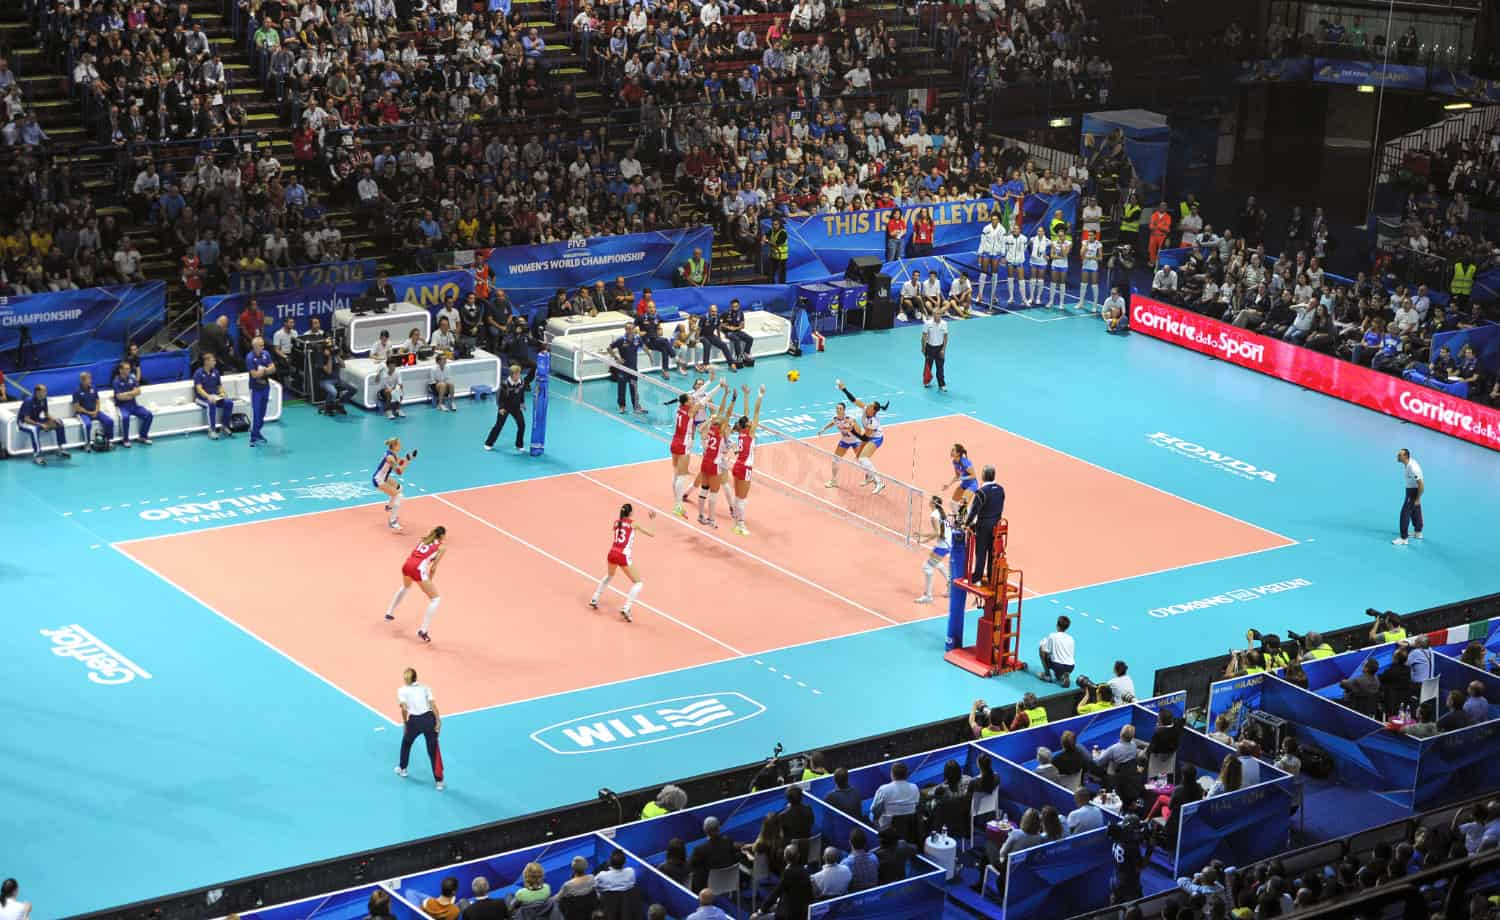 Womens volleyball match in progress | Bird's eye view